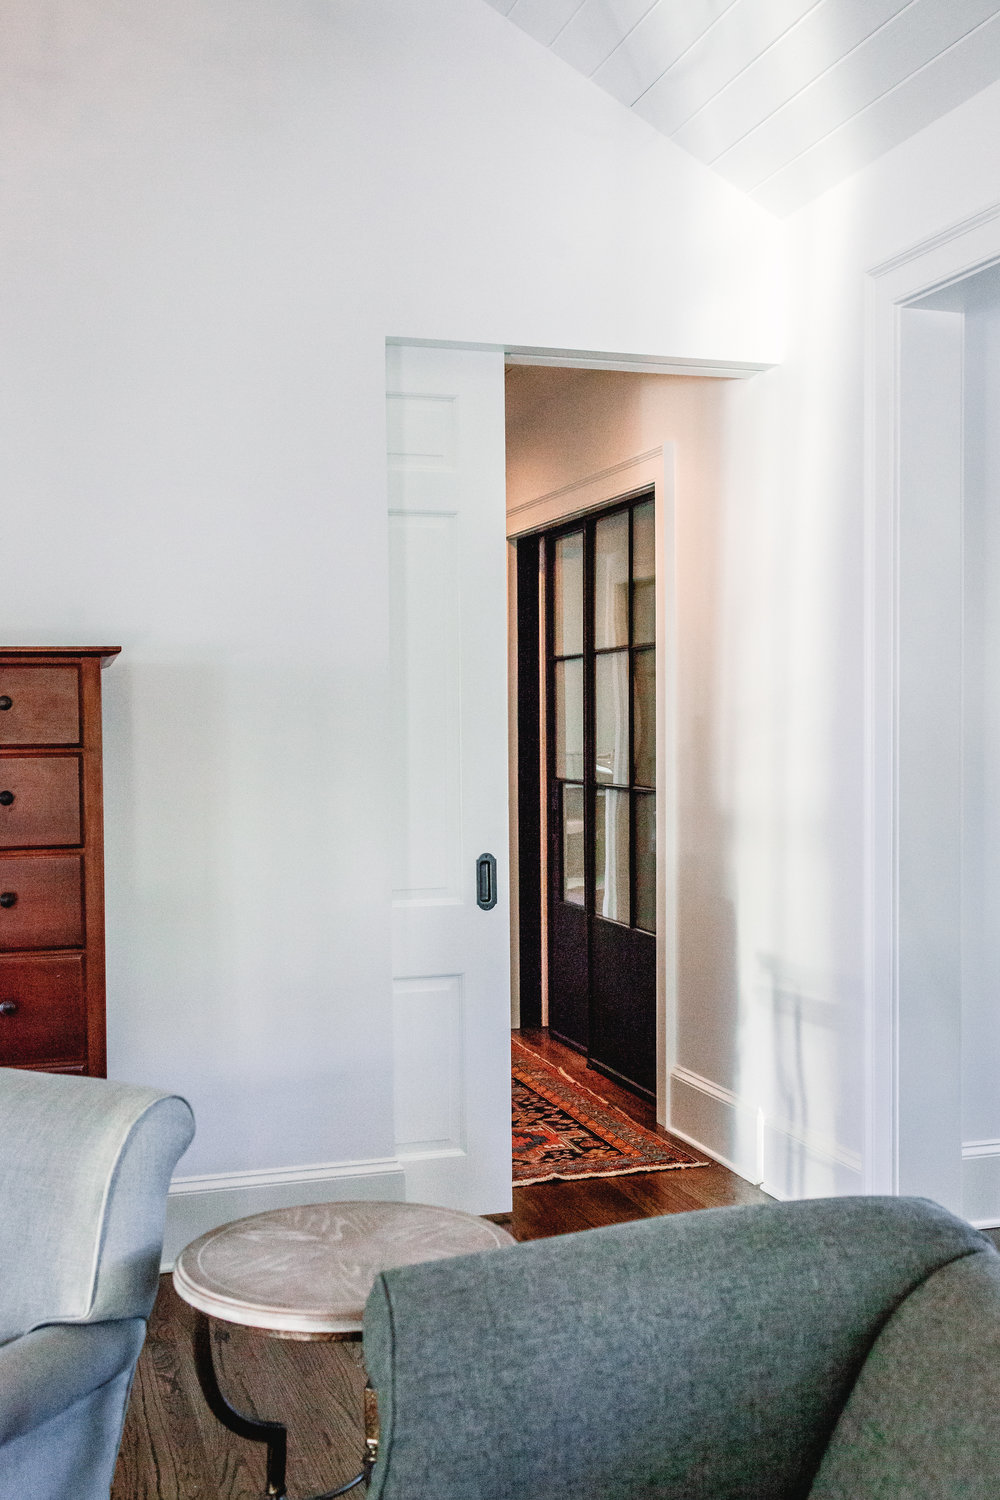 A discrete pocket door provides separation when needed between the bedroom and closet/bathroom areas.